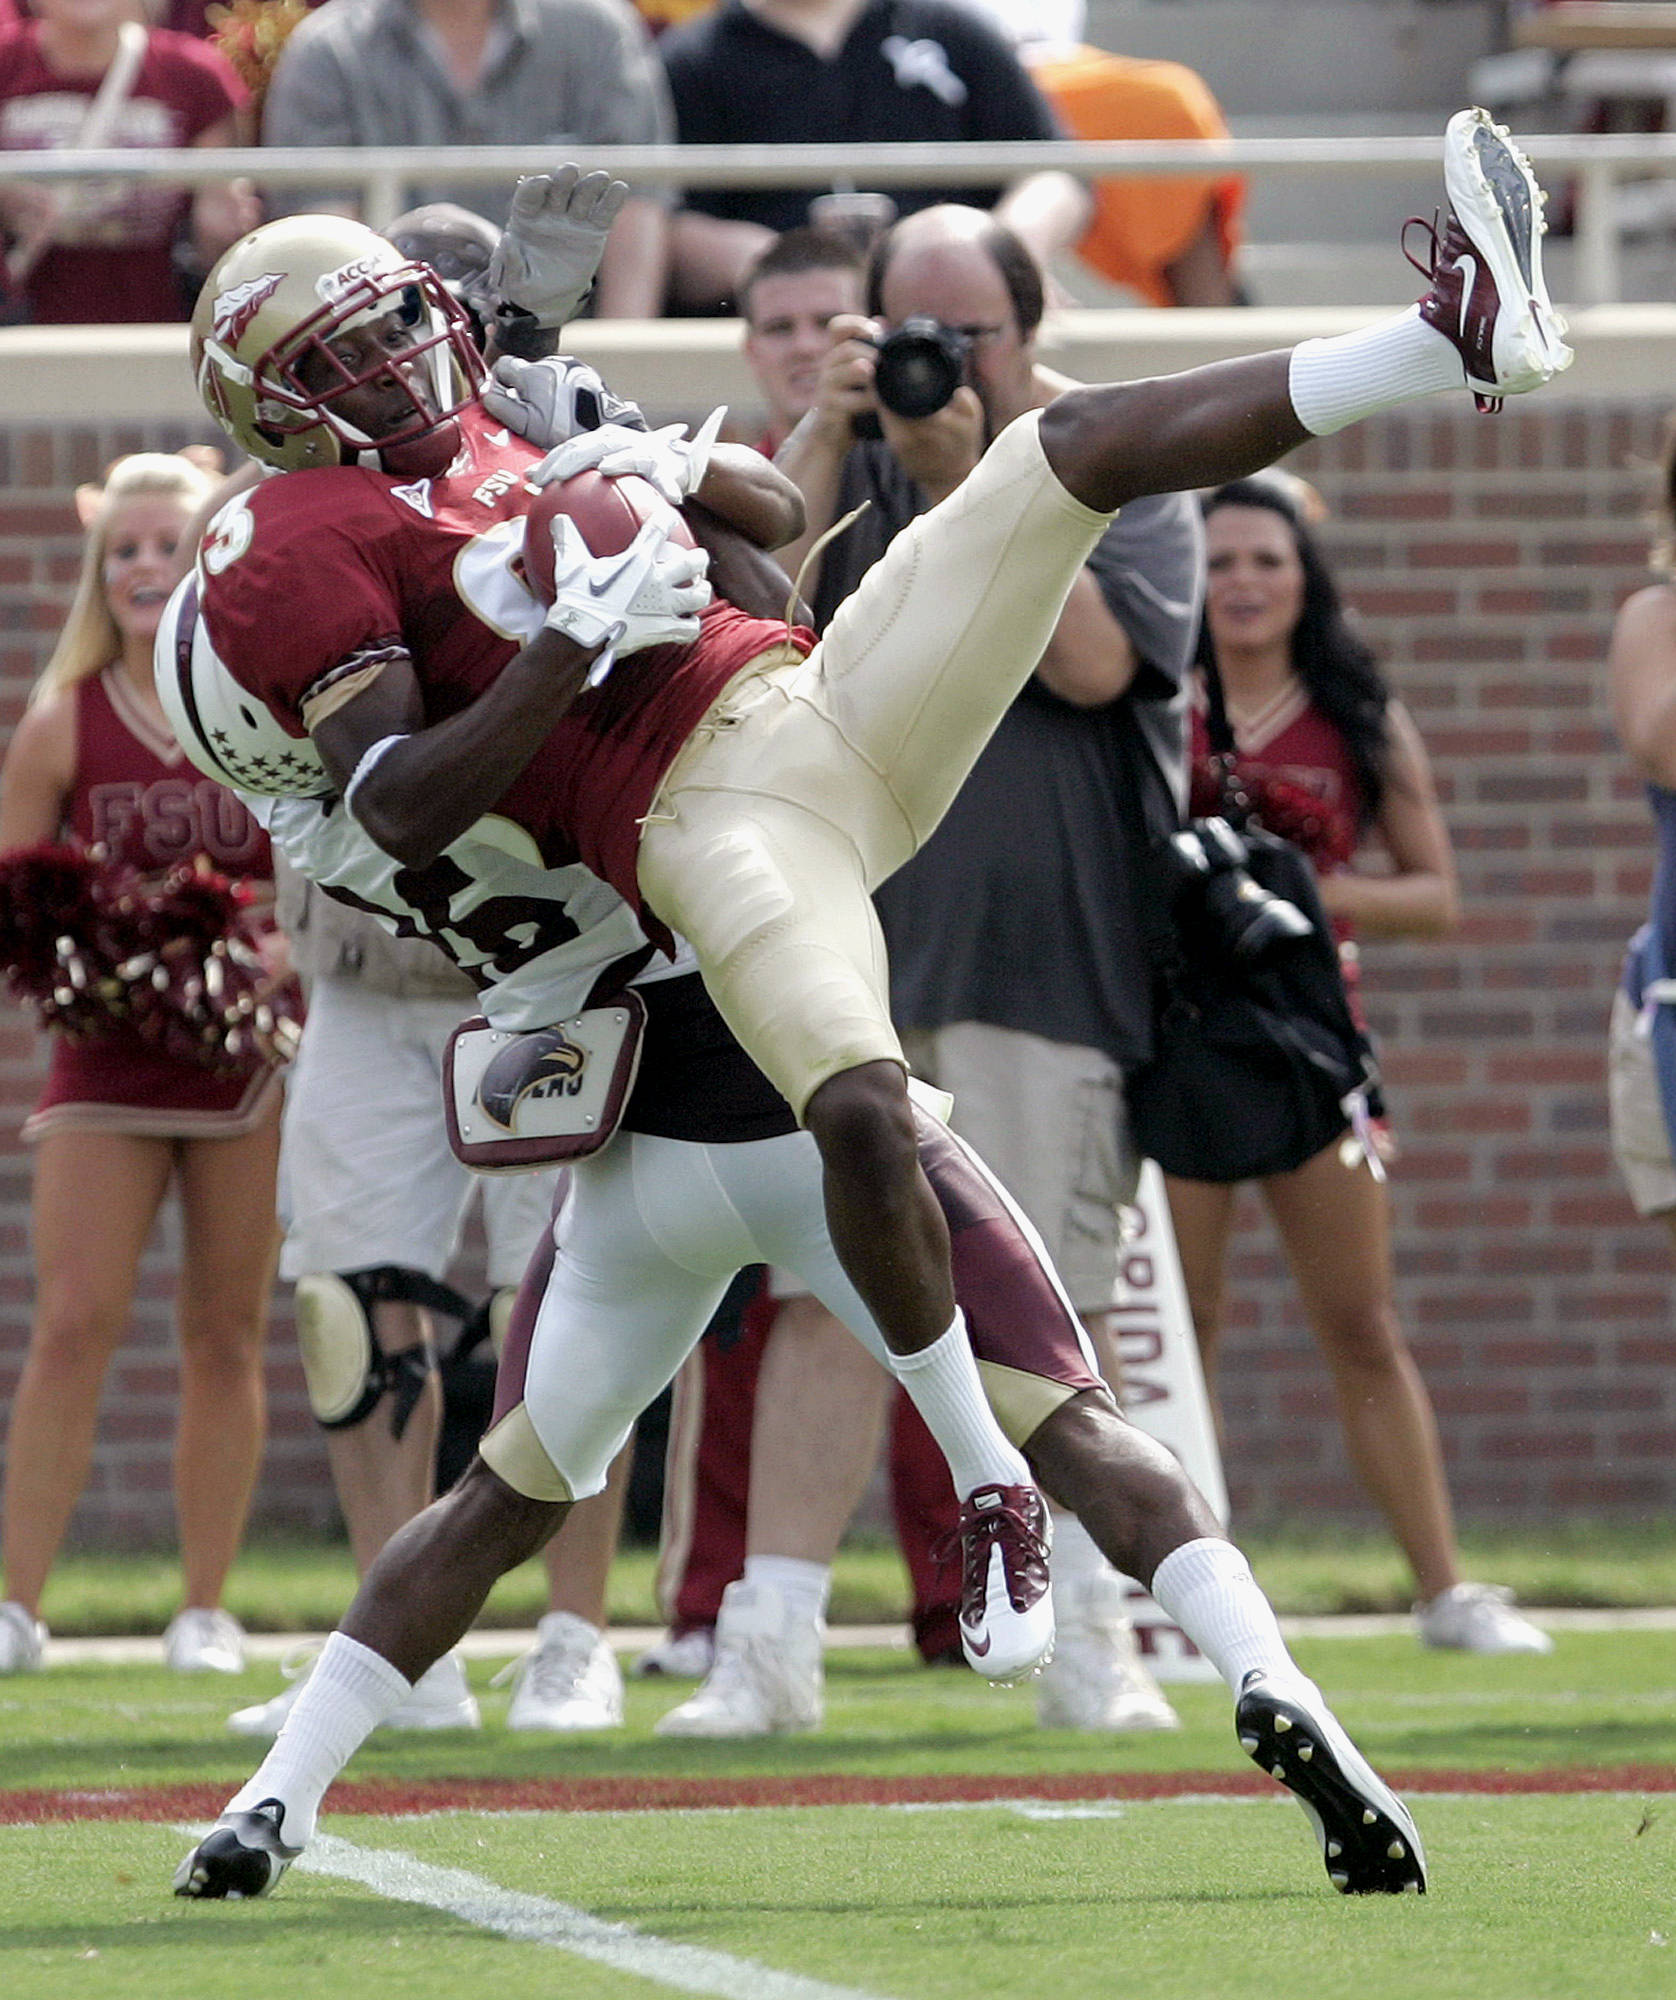 Florida State's Bert Reed makes a catch over the defense of Louisiana-Monroe's Cordero Smith in the second quarter of a NCAA college football game, Saturday, Sept. 3, 2011, in Tallahassee, Fla. (AP Photo/Steve Cannon)